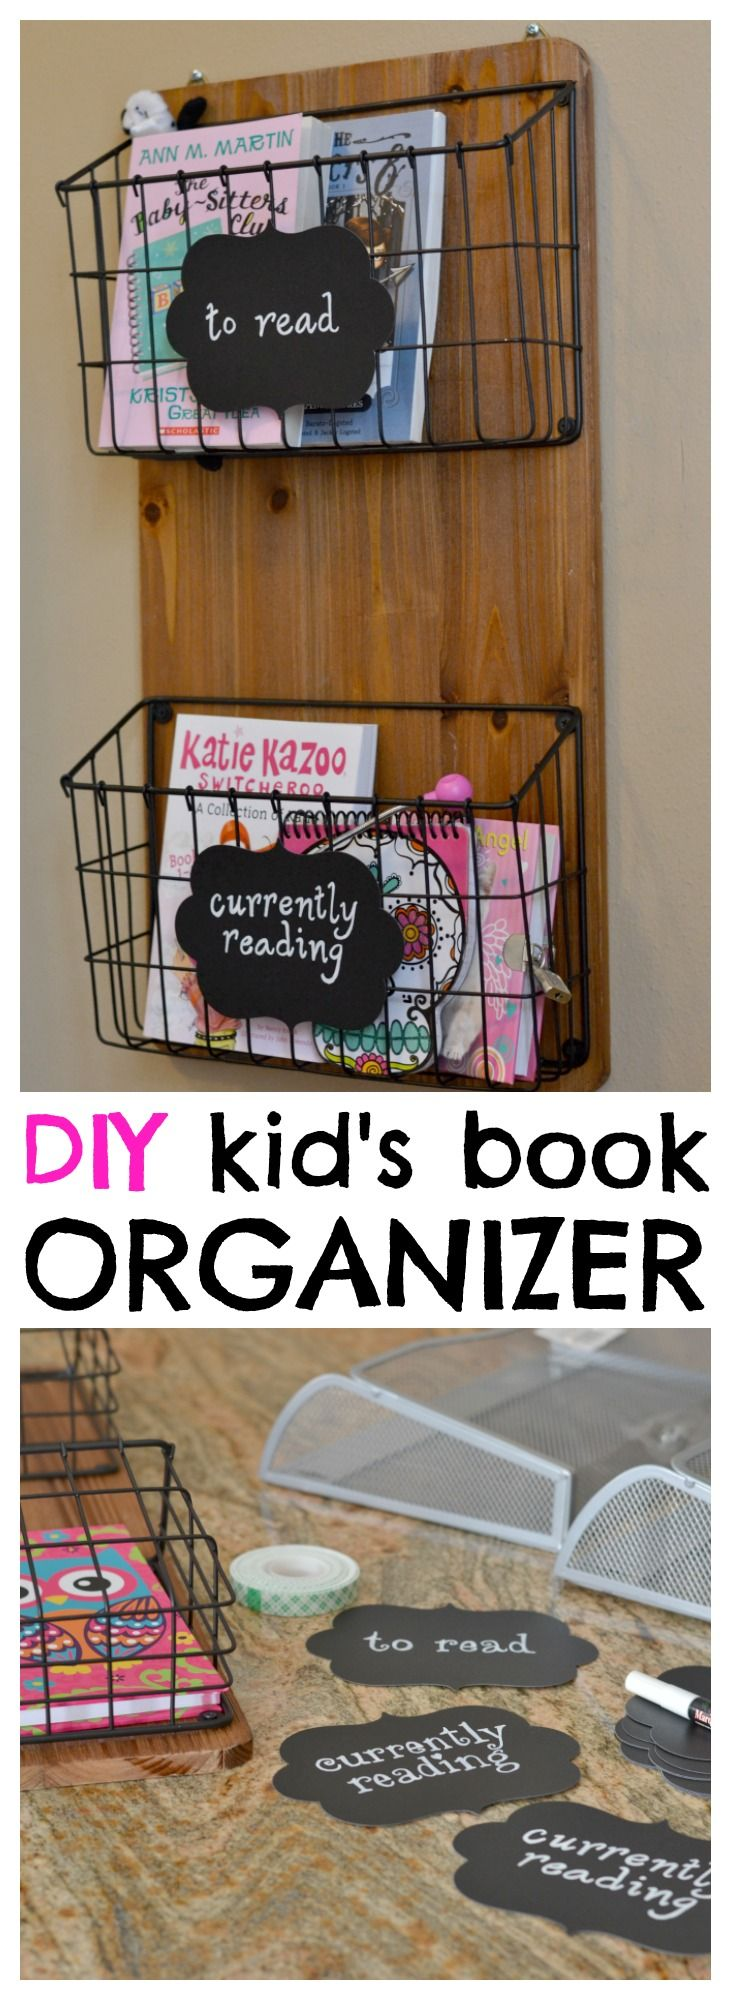 I don't love that this is really rustic, but a nicer version of this is a cute idea. Book organizer for kids.